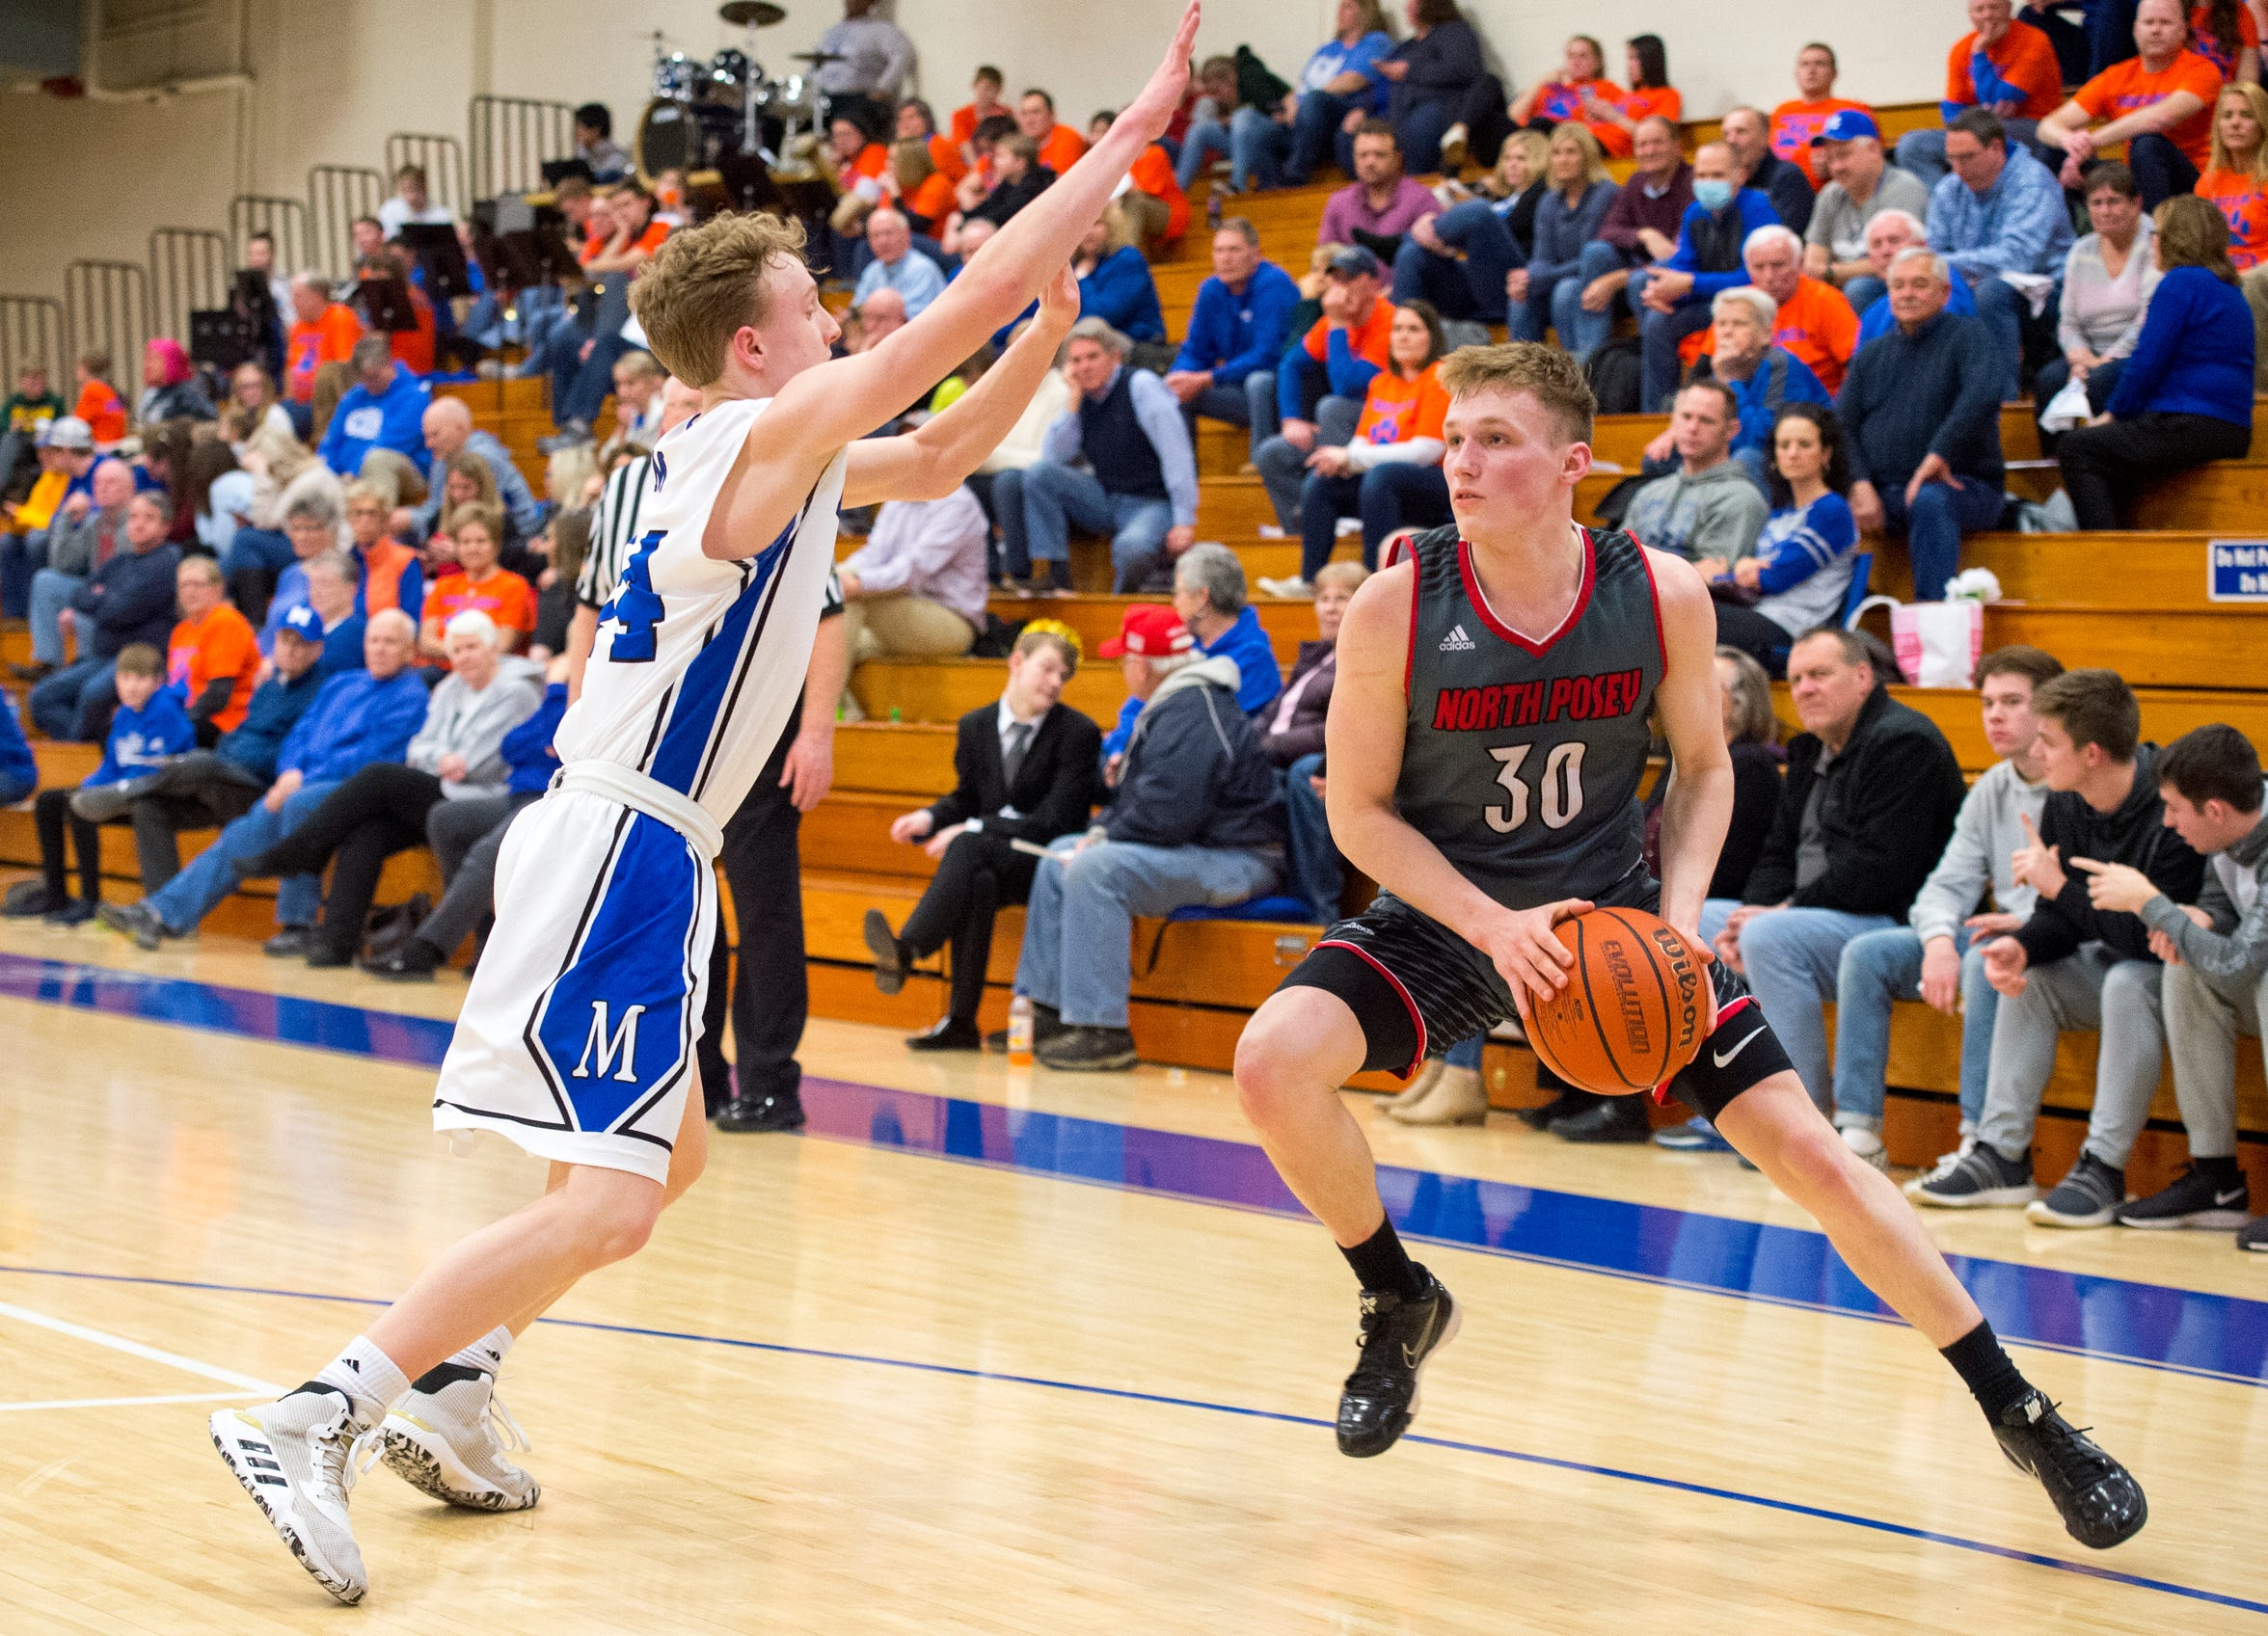 North Posey's Josiah Ricketts (30) steps back guarded by Memorial's Andrew Helmerich (14) as the North Posey Vikings play the Memorial Tigers play at Robert M Kent Athletic Center in Evansville, Ind., Friday night, Feb. 14, 2020.